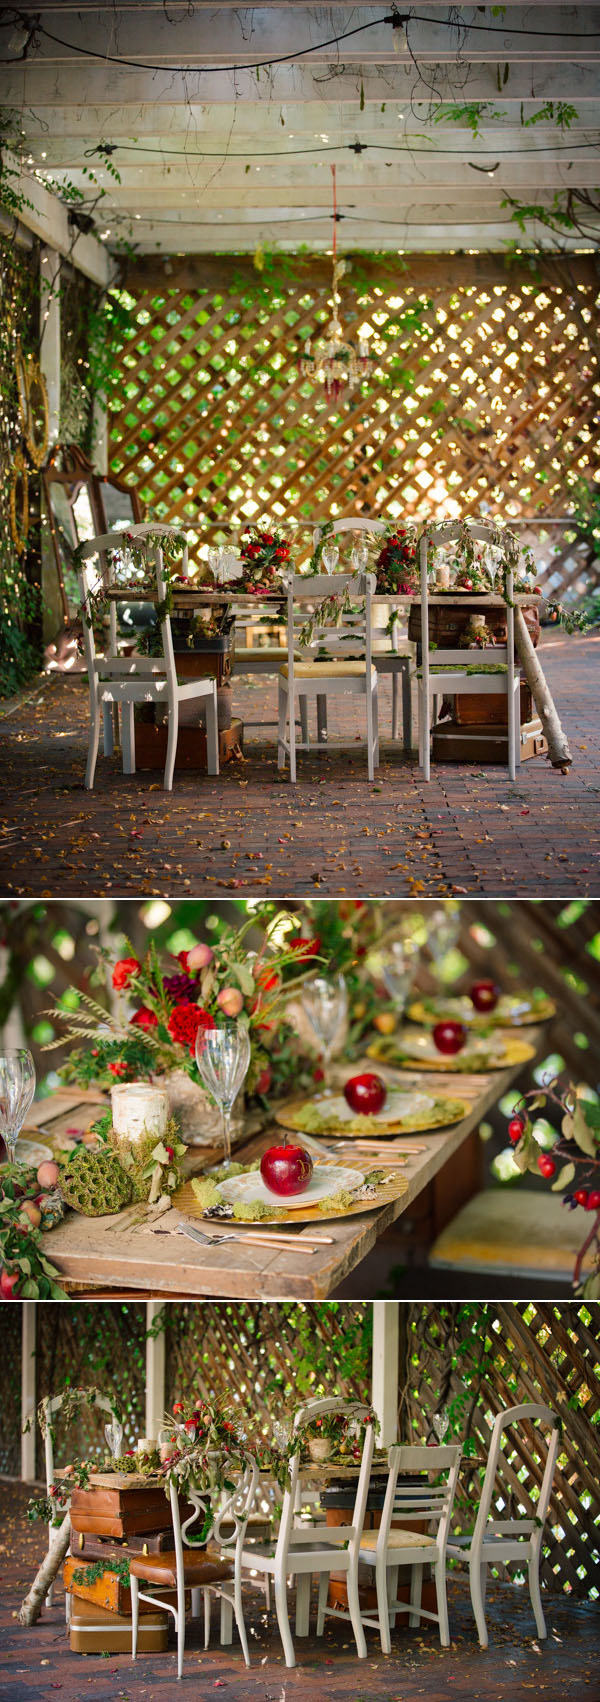 gorgeous indoor wedding table settings with red apples for winter wedding